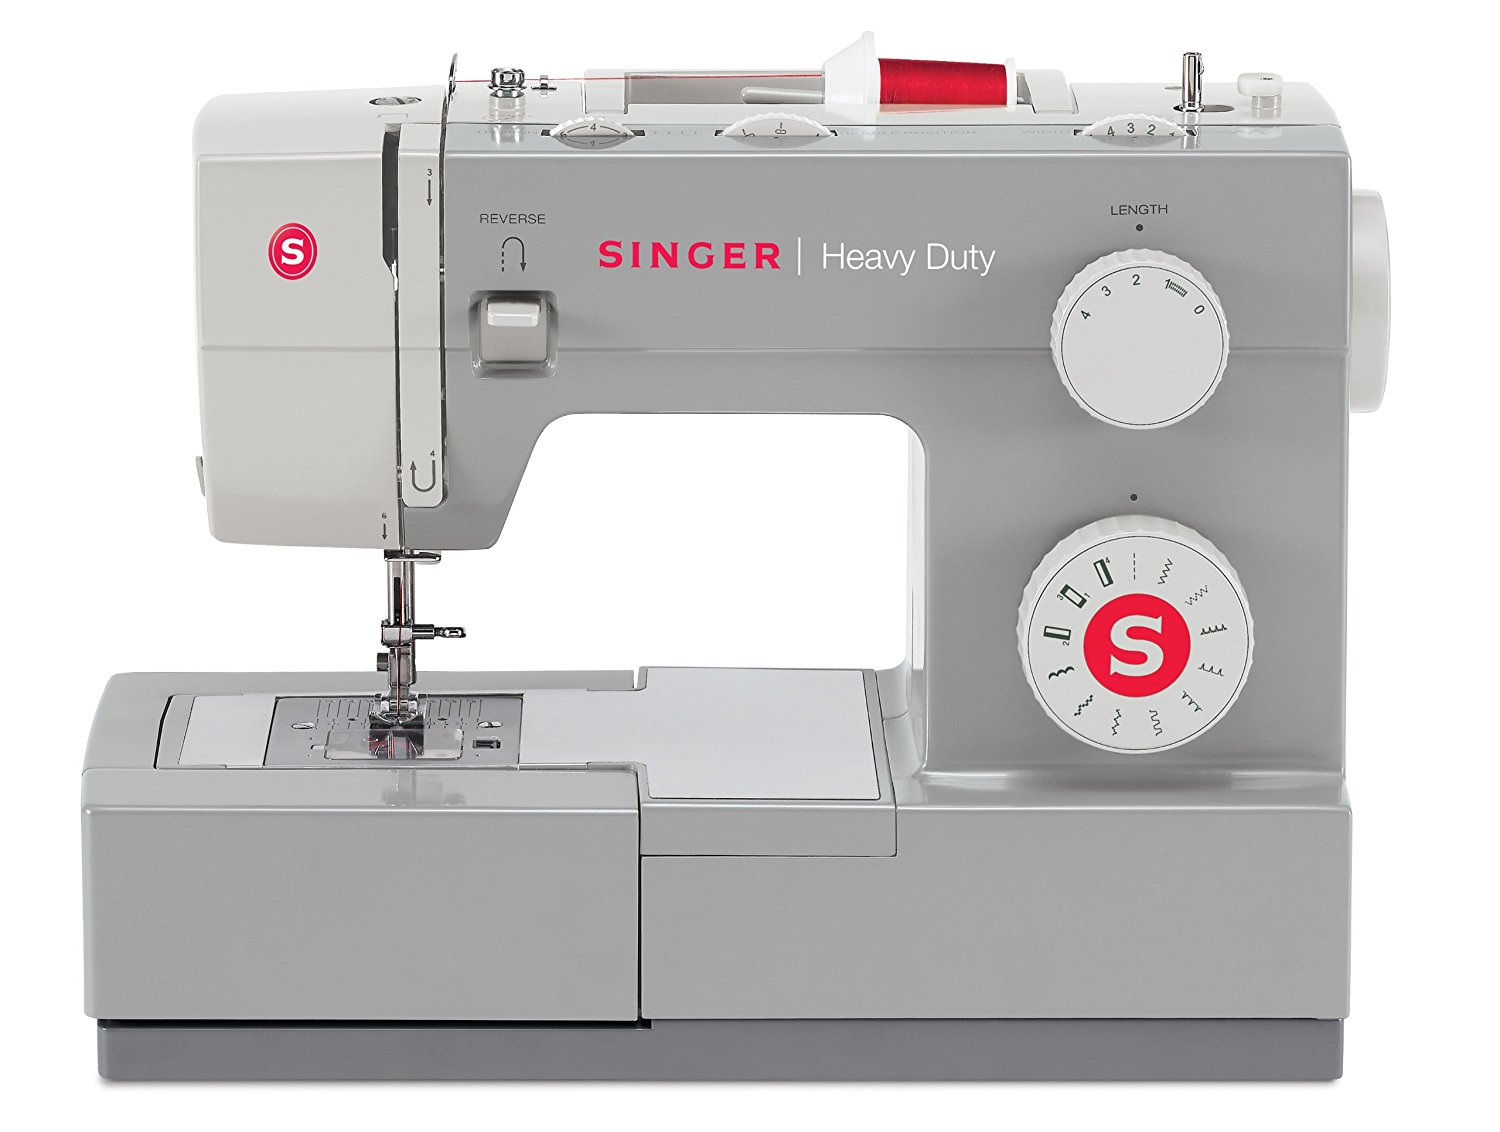 15 Best Sewing Machines For Beginners Sew Care Bernina 830 Machine Threading Diagram Product Name Singer 4411 Buy Check On Amazon Ratings 42 Built In Stitch 11 Stitches Per Minute 1100 Button Hole Style 1